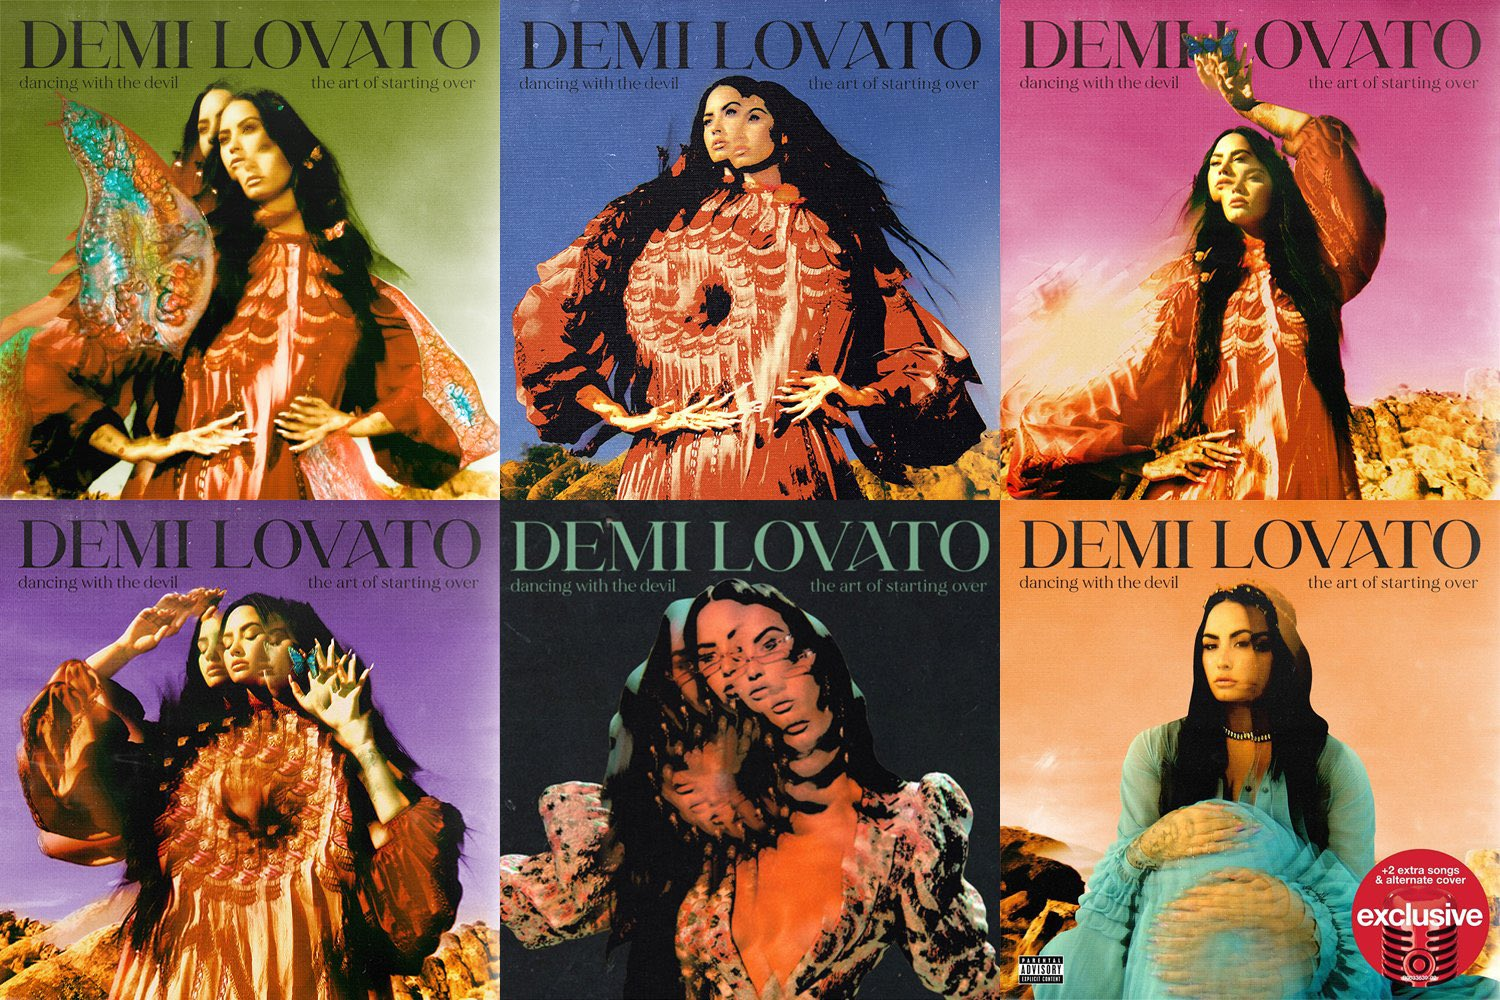 Demi Lovato to release 7th studio album 'Dancing With The Devil: The Art Of Starting  Over' on April 2nd - Page 3 - Music News - BreatheHeavy   Exhale